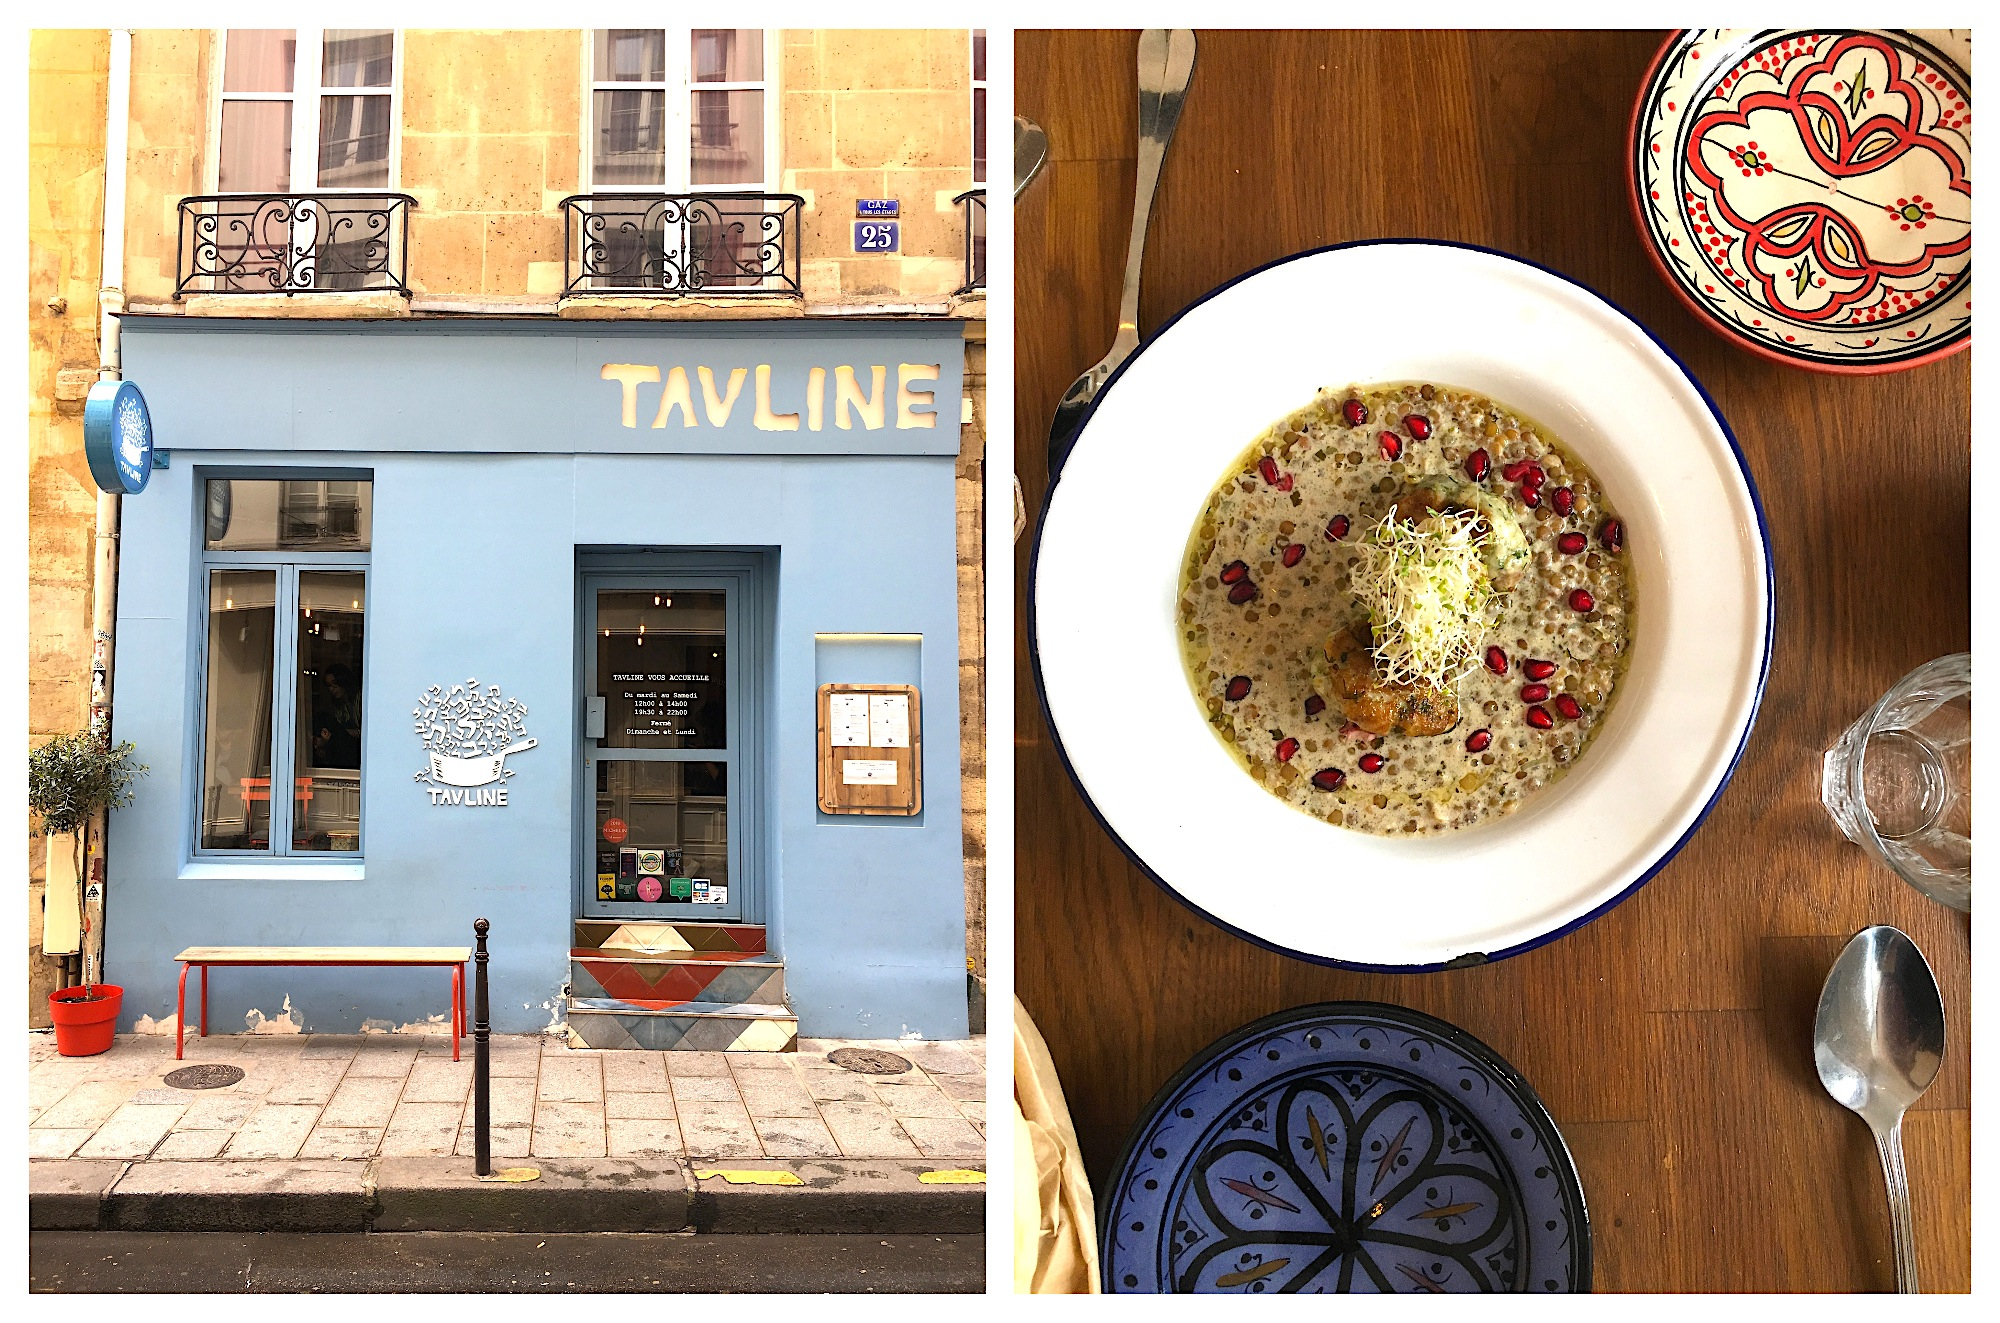 Some of the best Tel Aviv food in Paris' Marais neighborhood is served at Tavline, with its powder-blue facade (left). Its dishes are fresh and homemade (right).